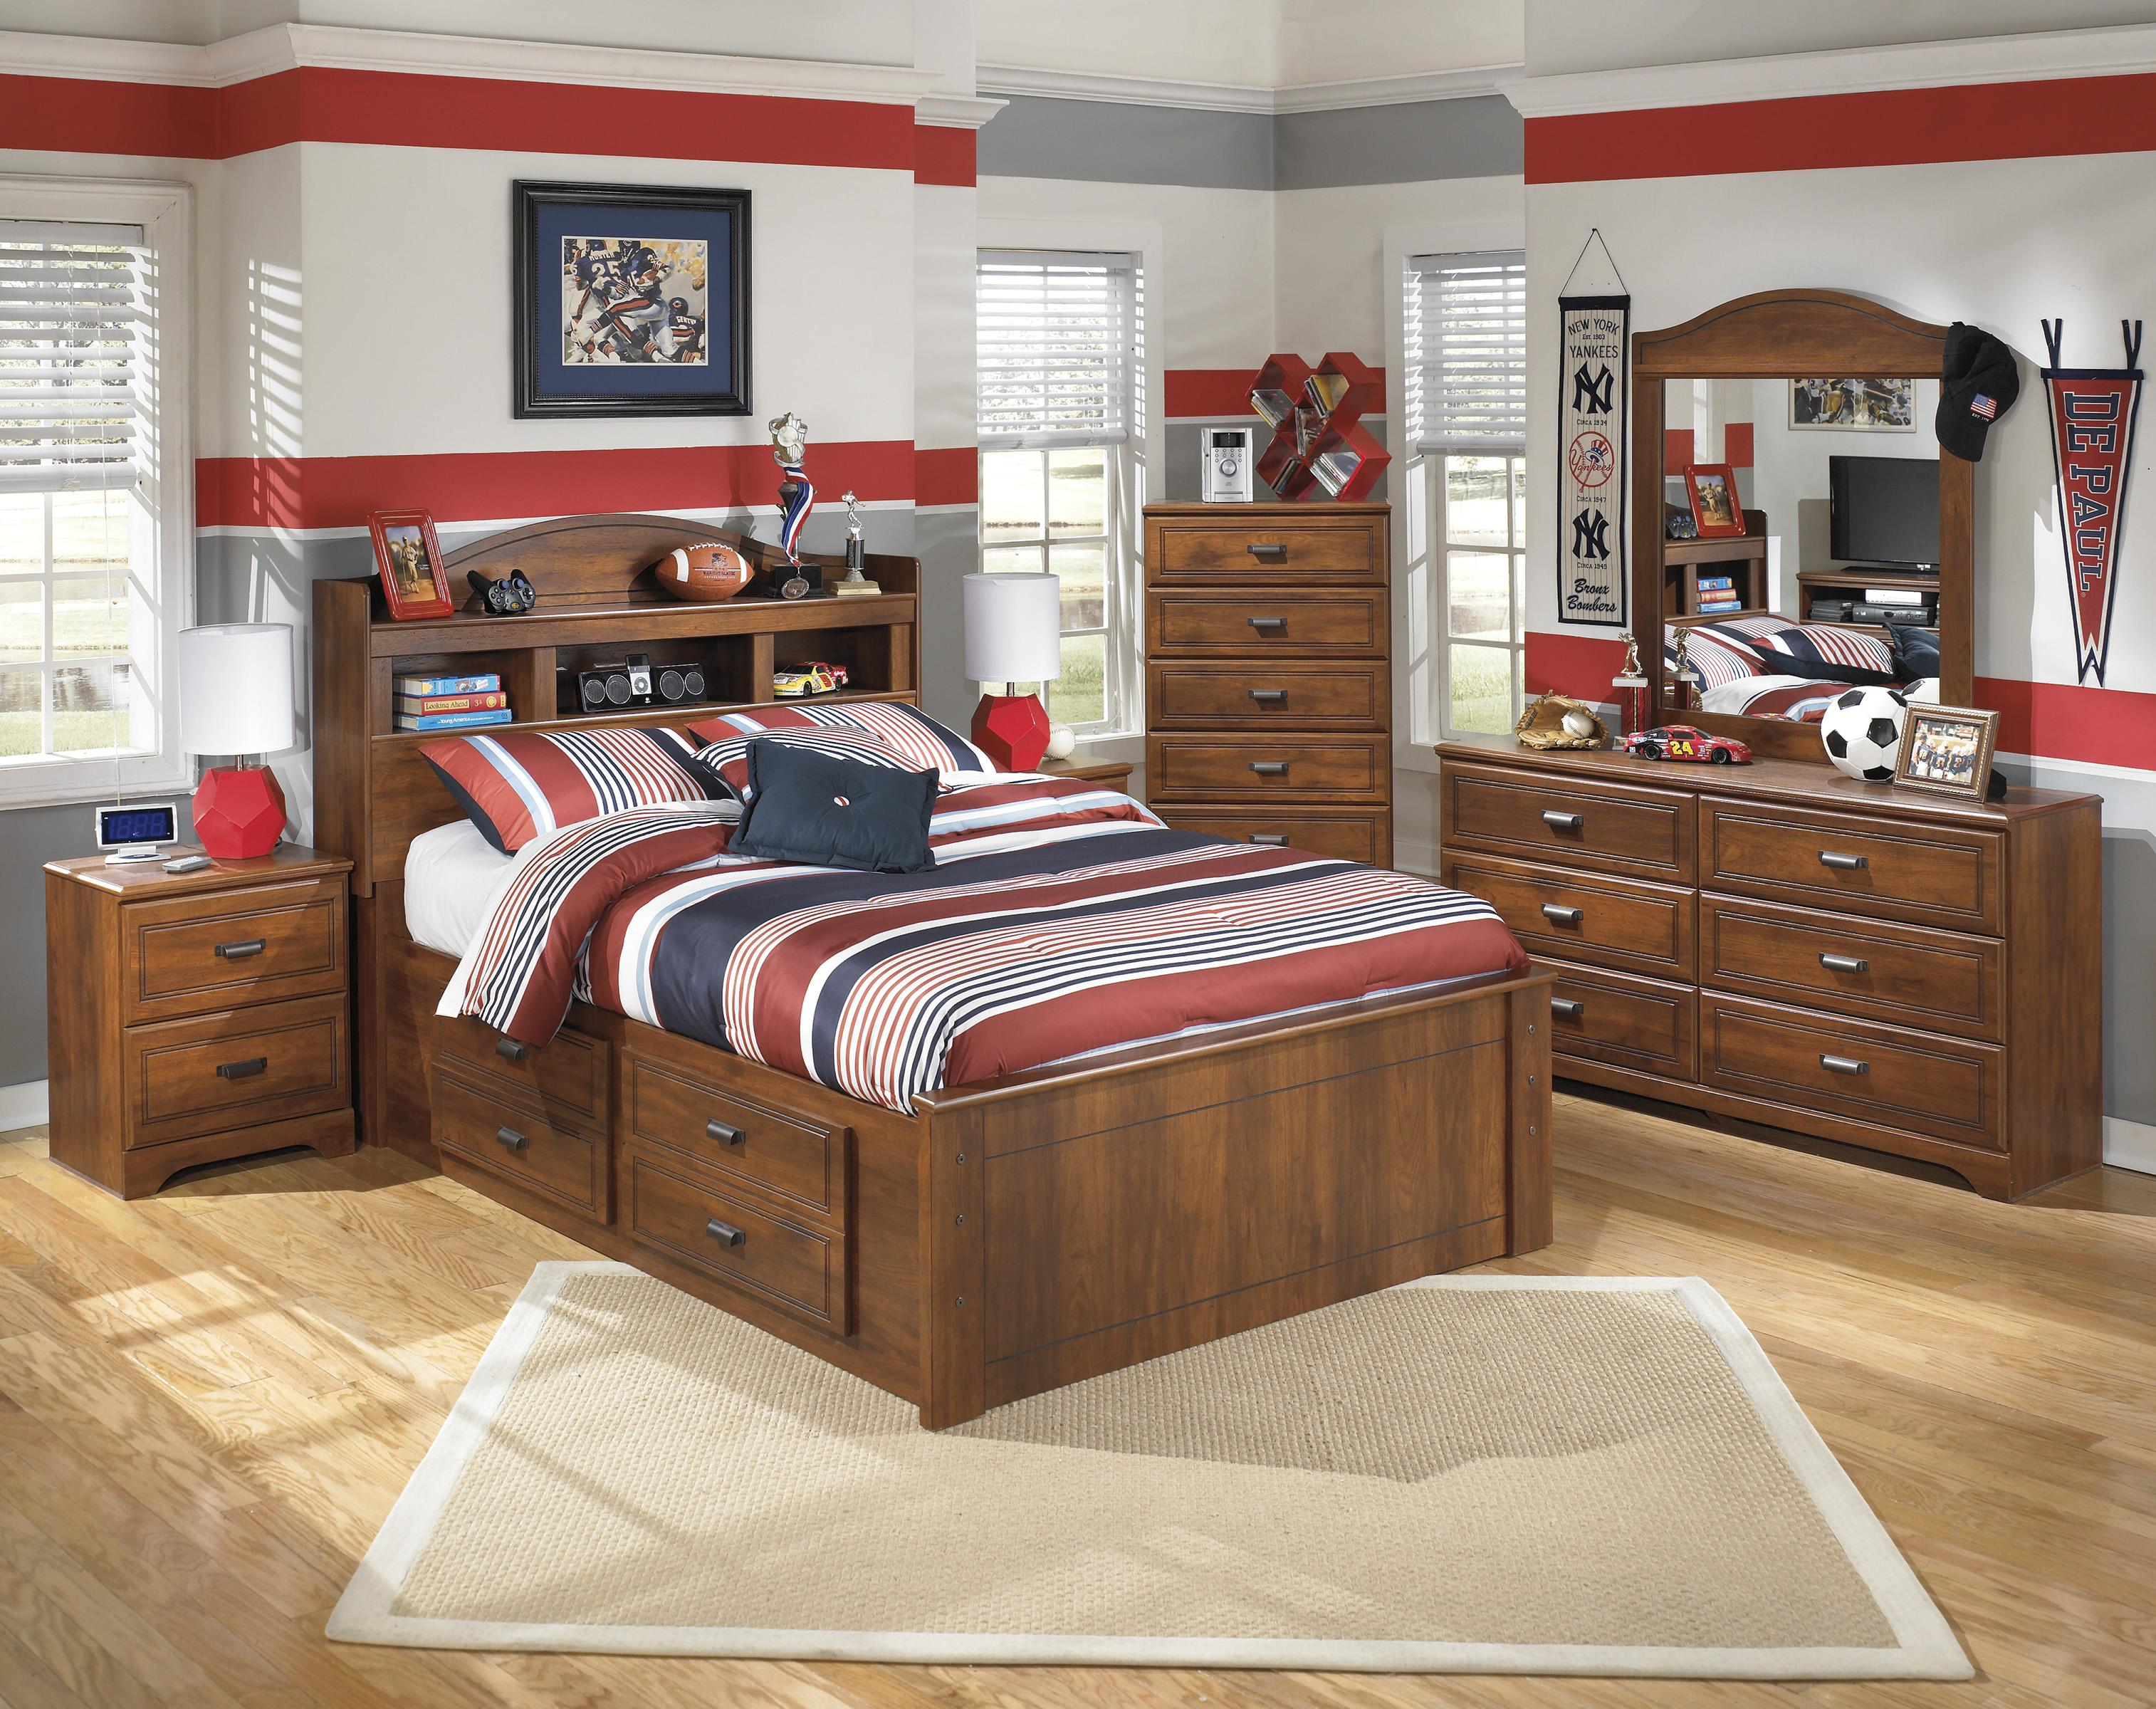 Signature Design By Ashley Barchan Full Bookcase Bed With Underbed Storage John V Schultz